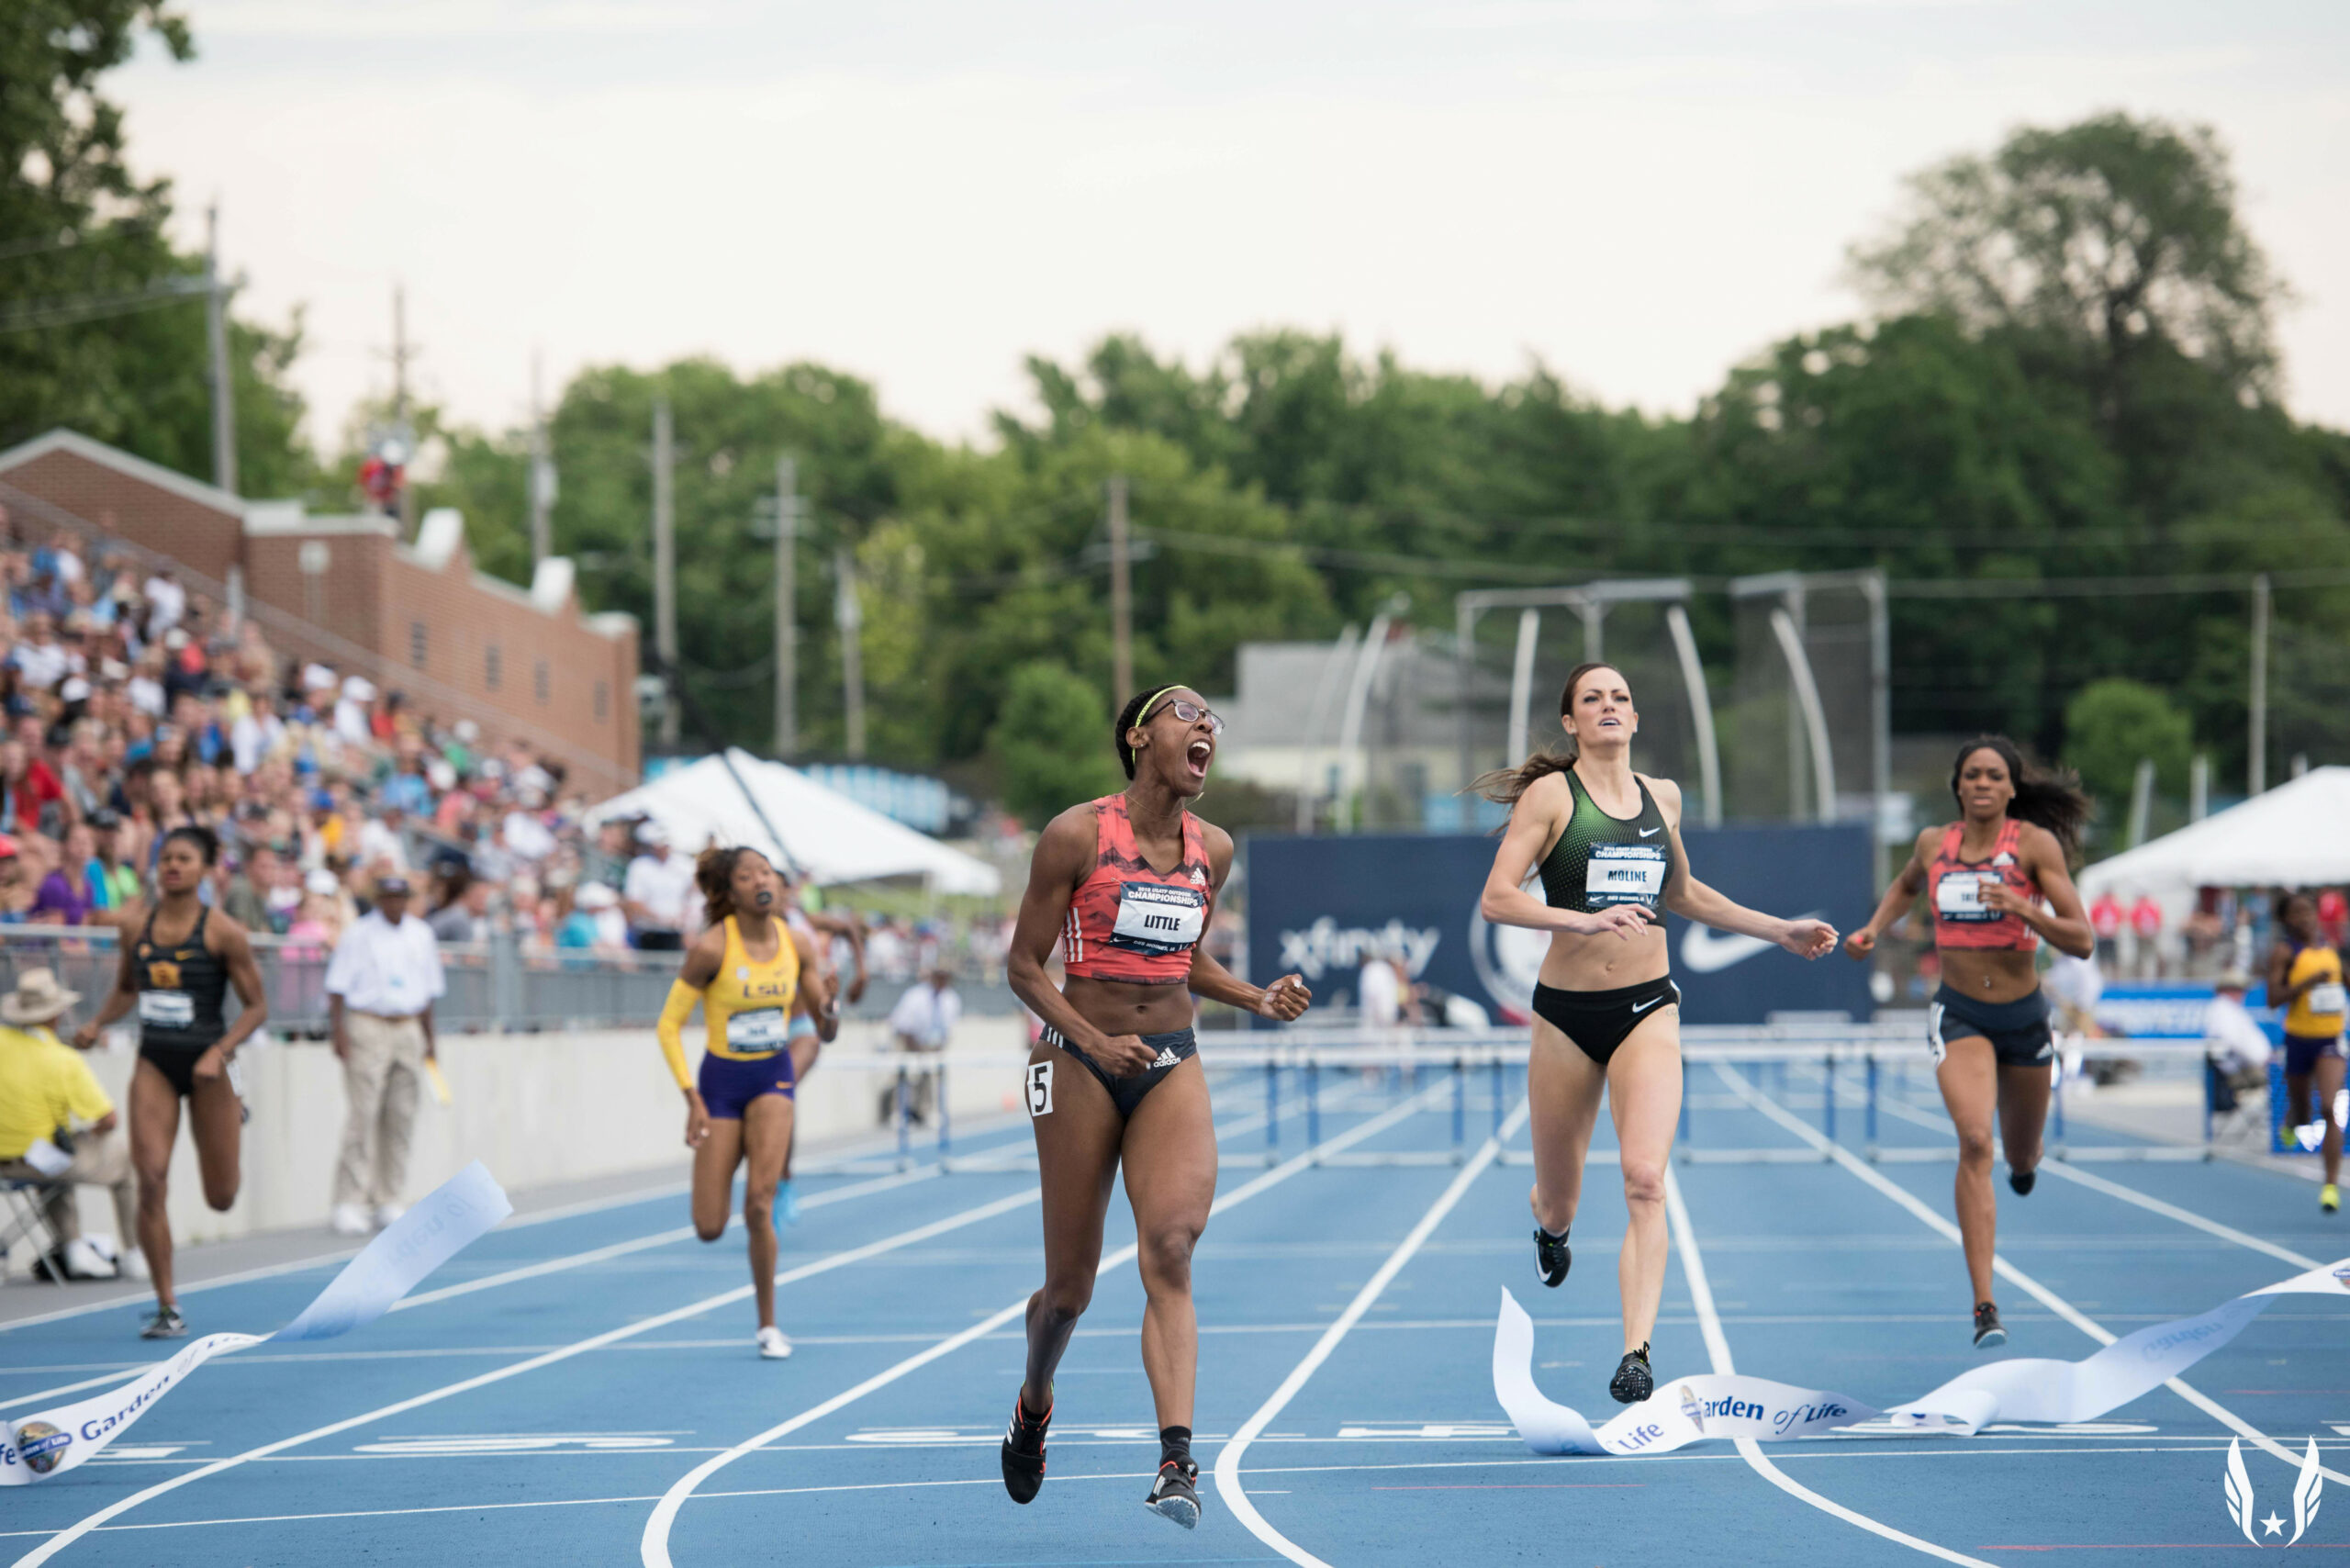 12 Toyota USATF Outdoor Championships | Des Moines, IA